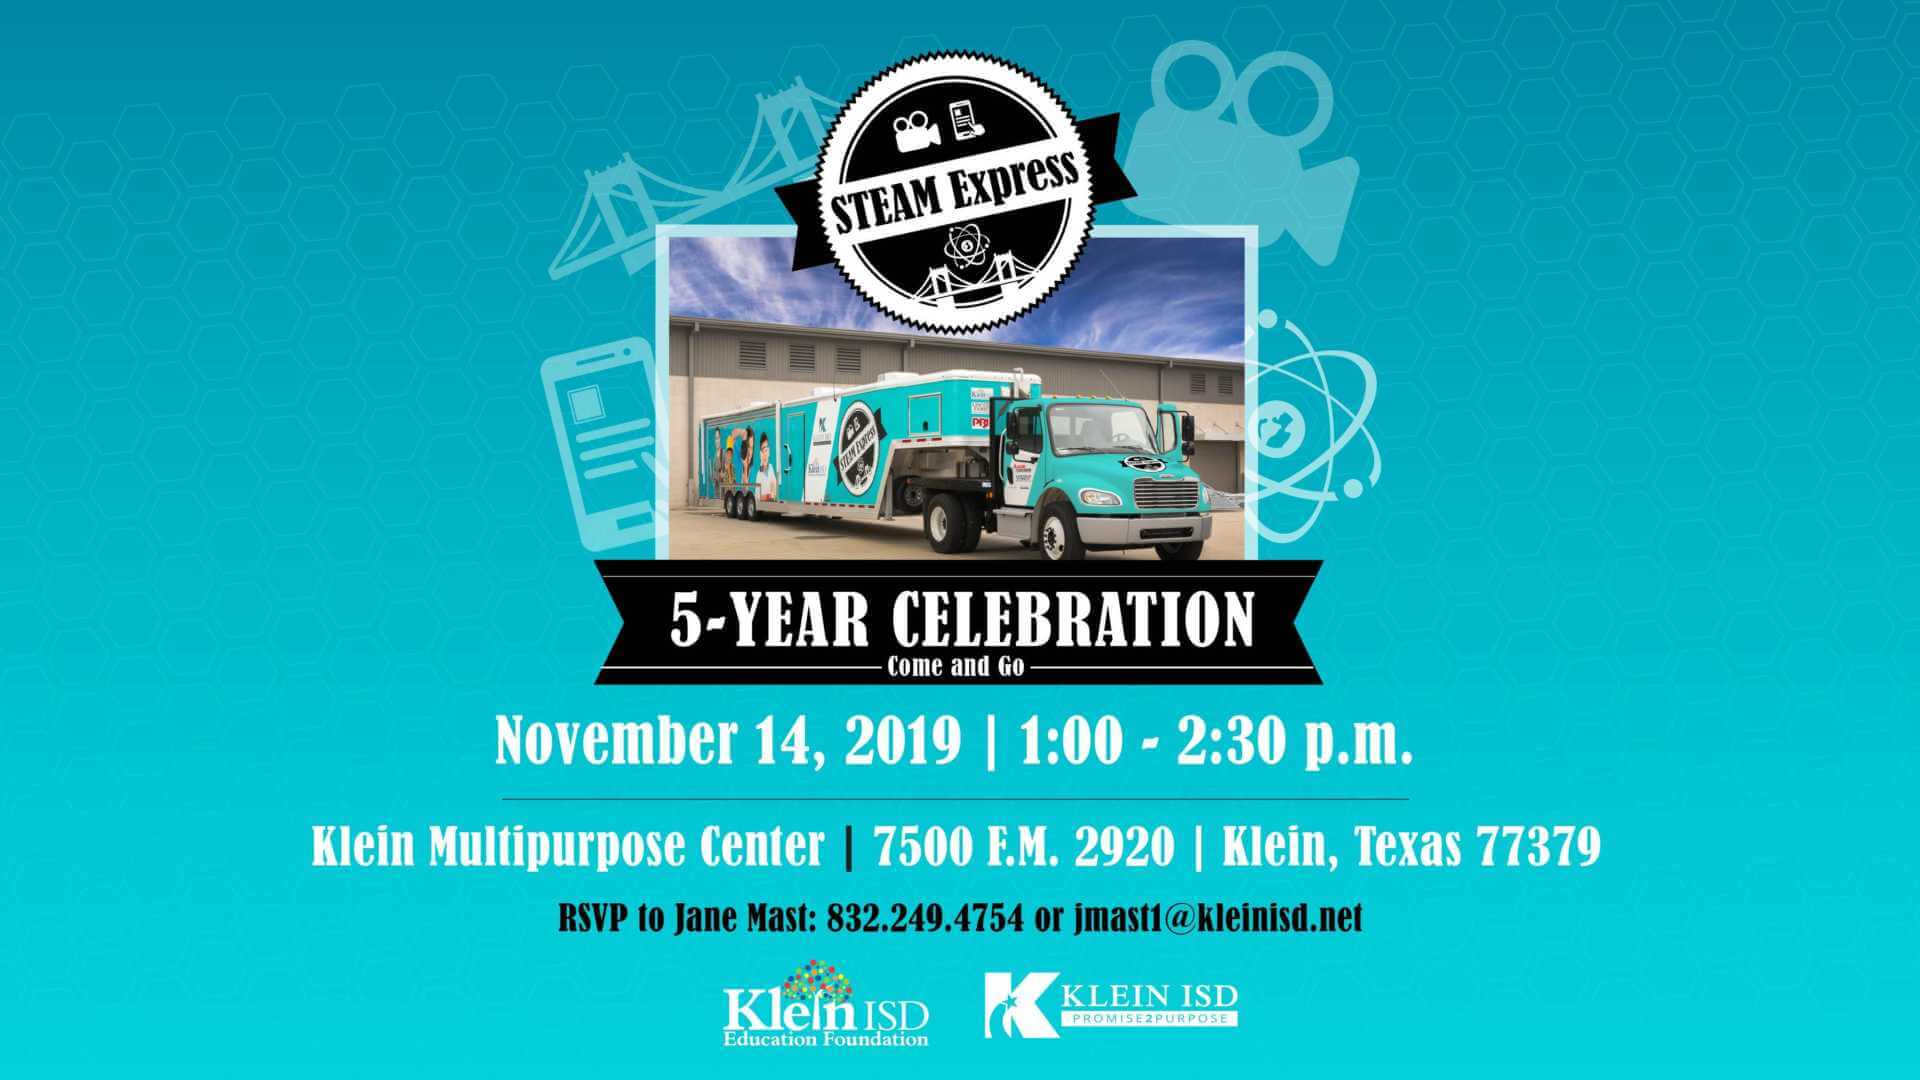 You're Invited: Come Celebrate 5 Years of the STEAM Express with Klein ISD